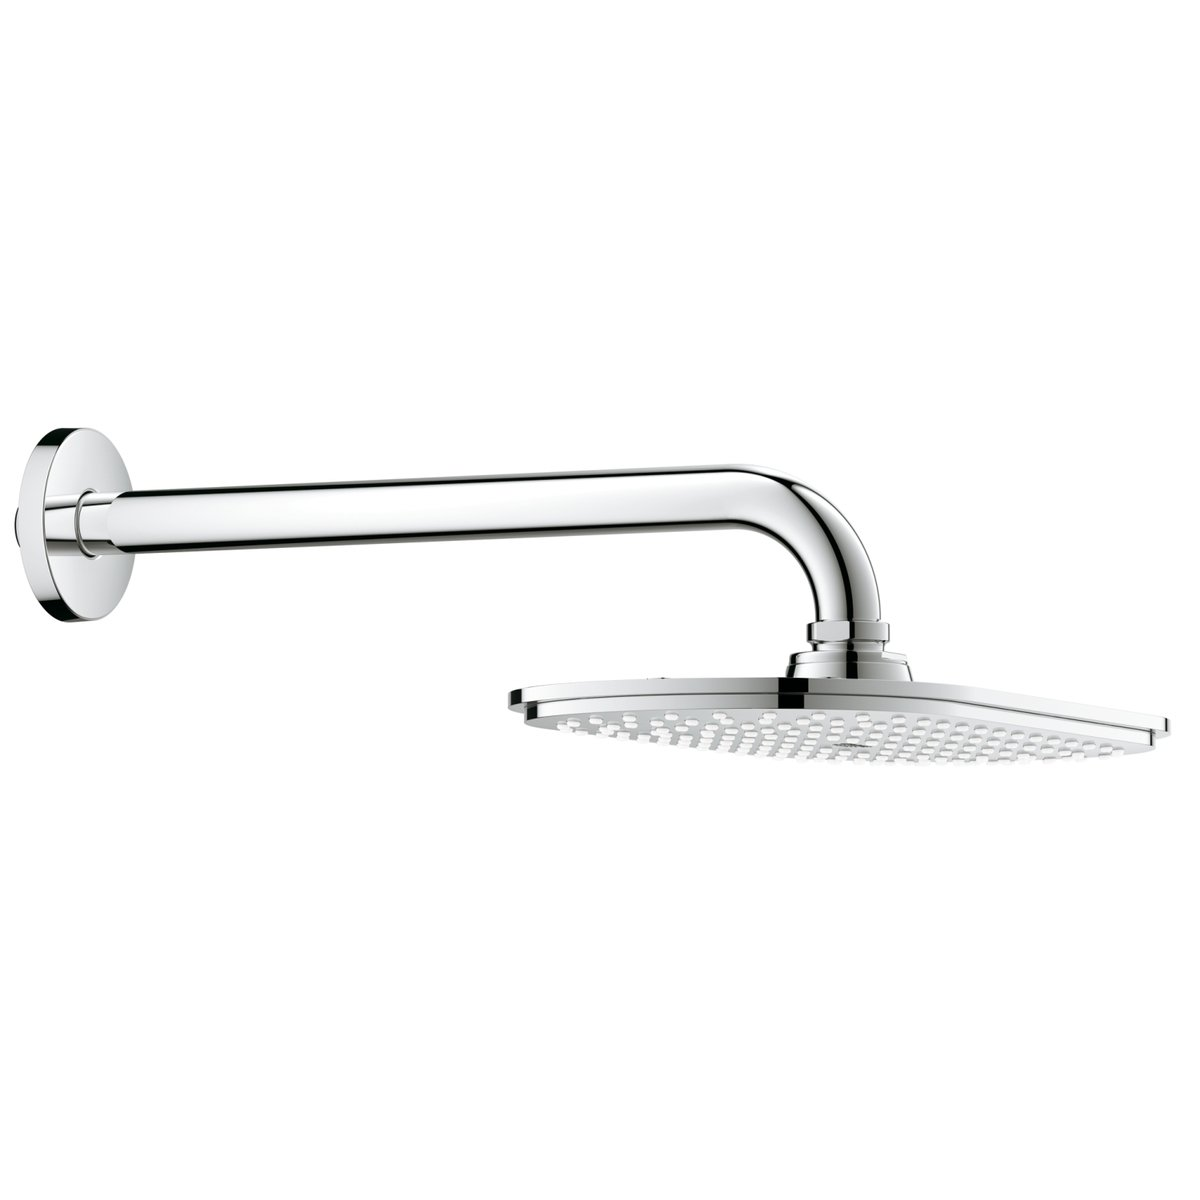 grohe rainshower veris douche de t te 30cm avec bras de douche 286mm chrome 26068000. Black Bedroom Furniture Sets. Home Design Ideas